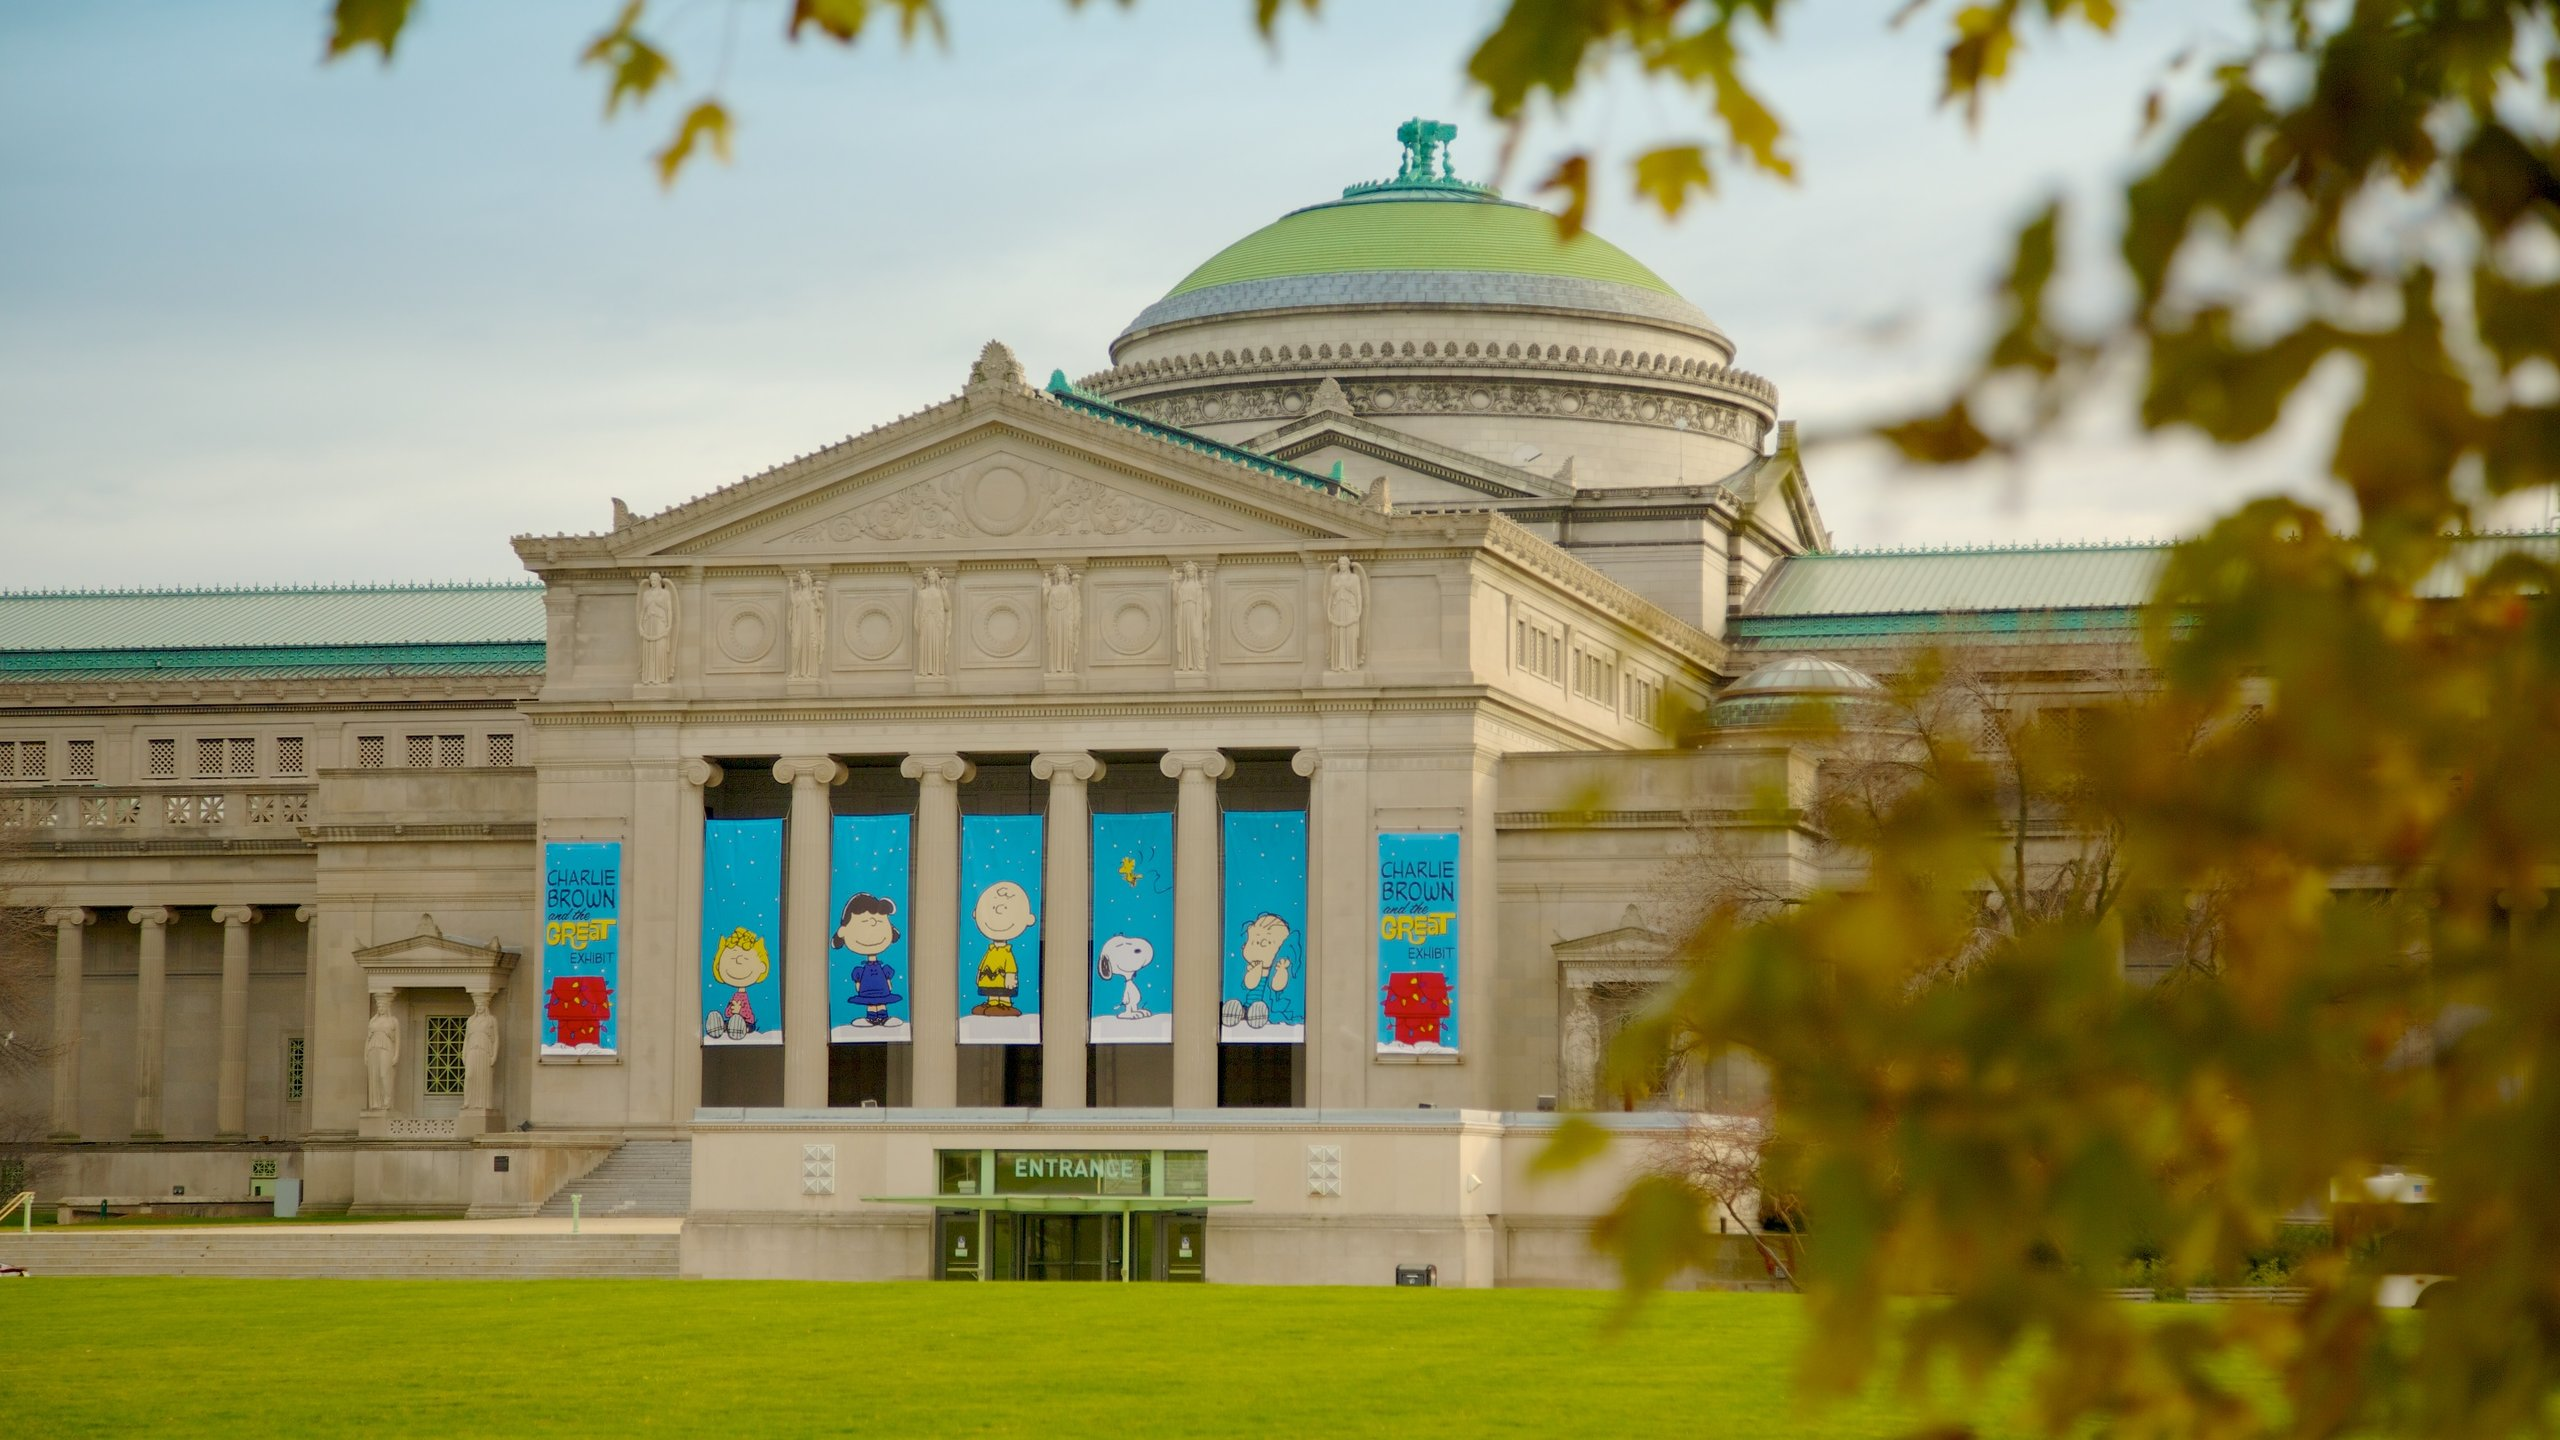 Chicago Museum of Science and Industry, Chicago, Illinois, United States of America